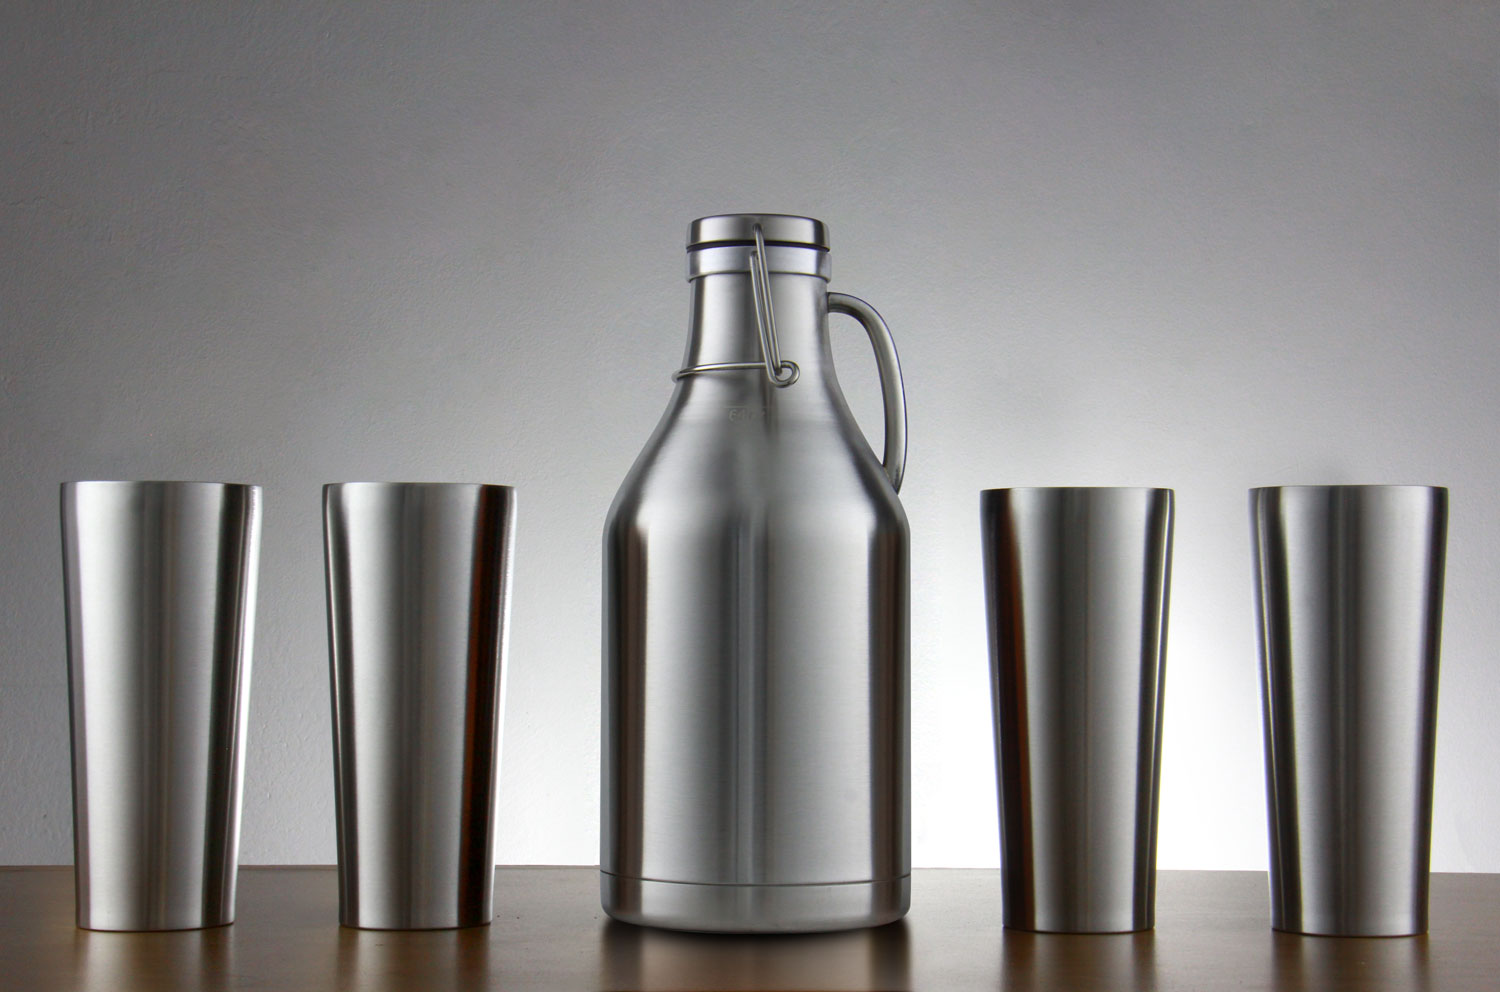 Kegco Stainless Steel Growler and Pint Set